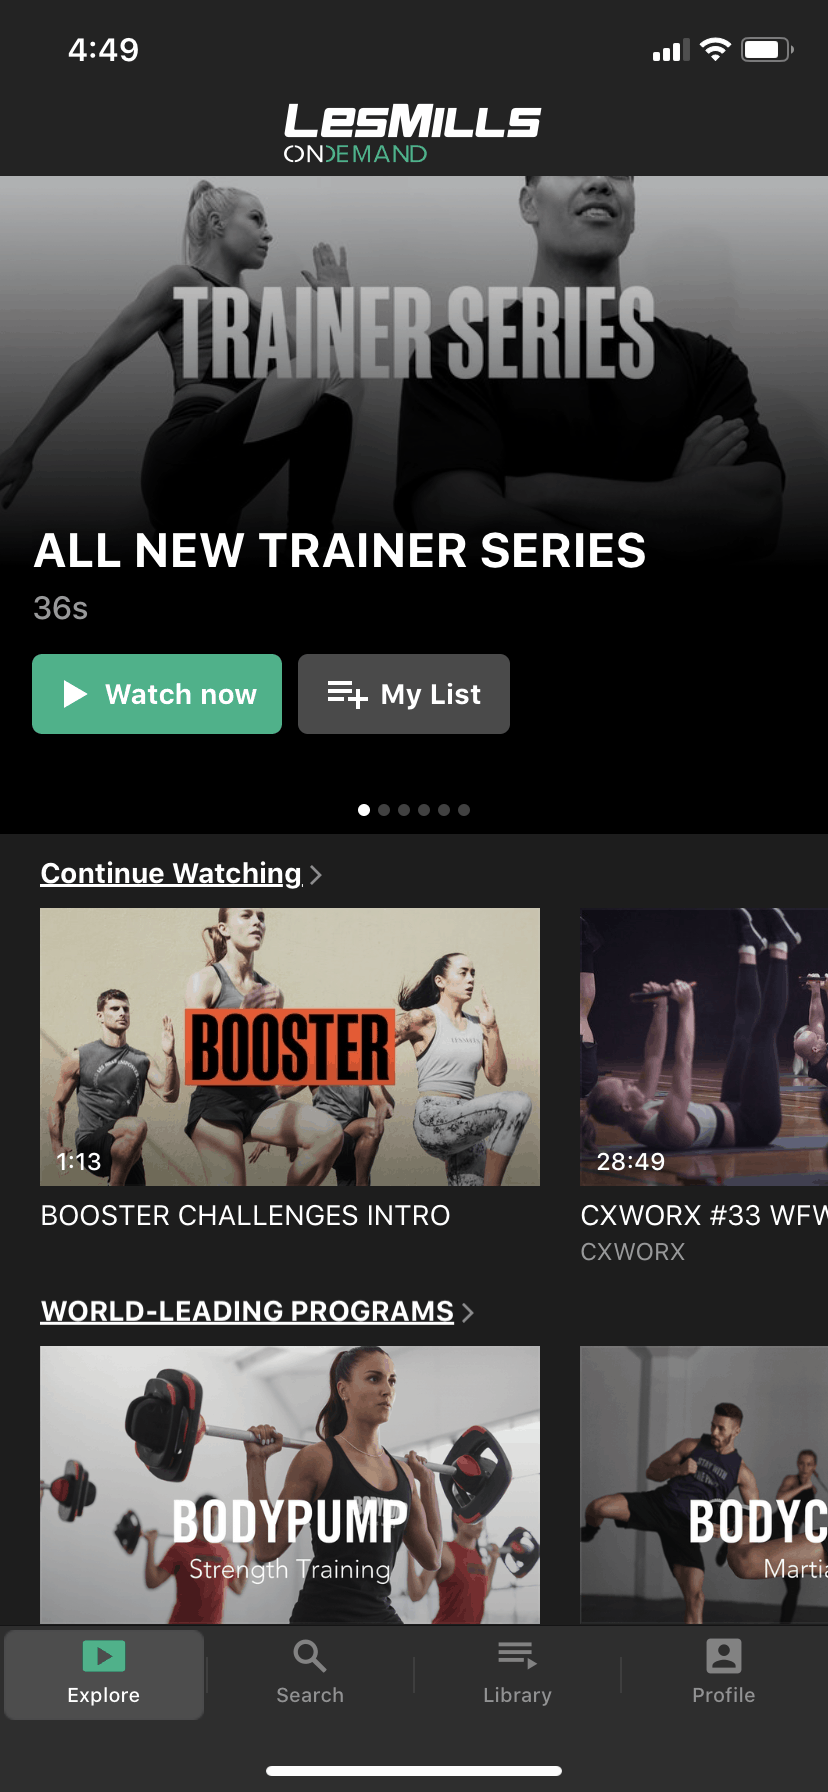 how much is les mills on demand app